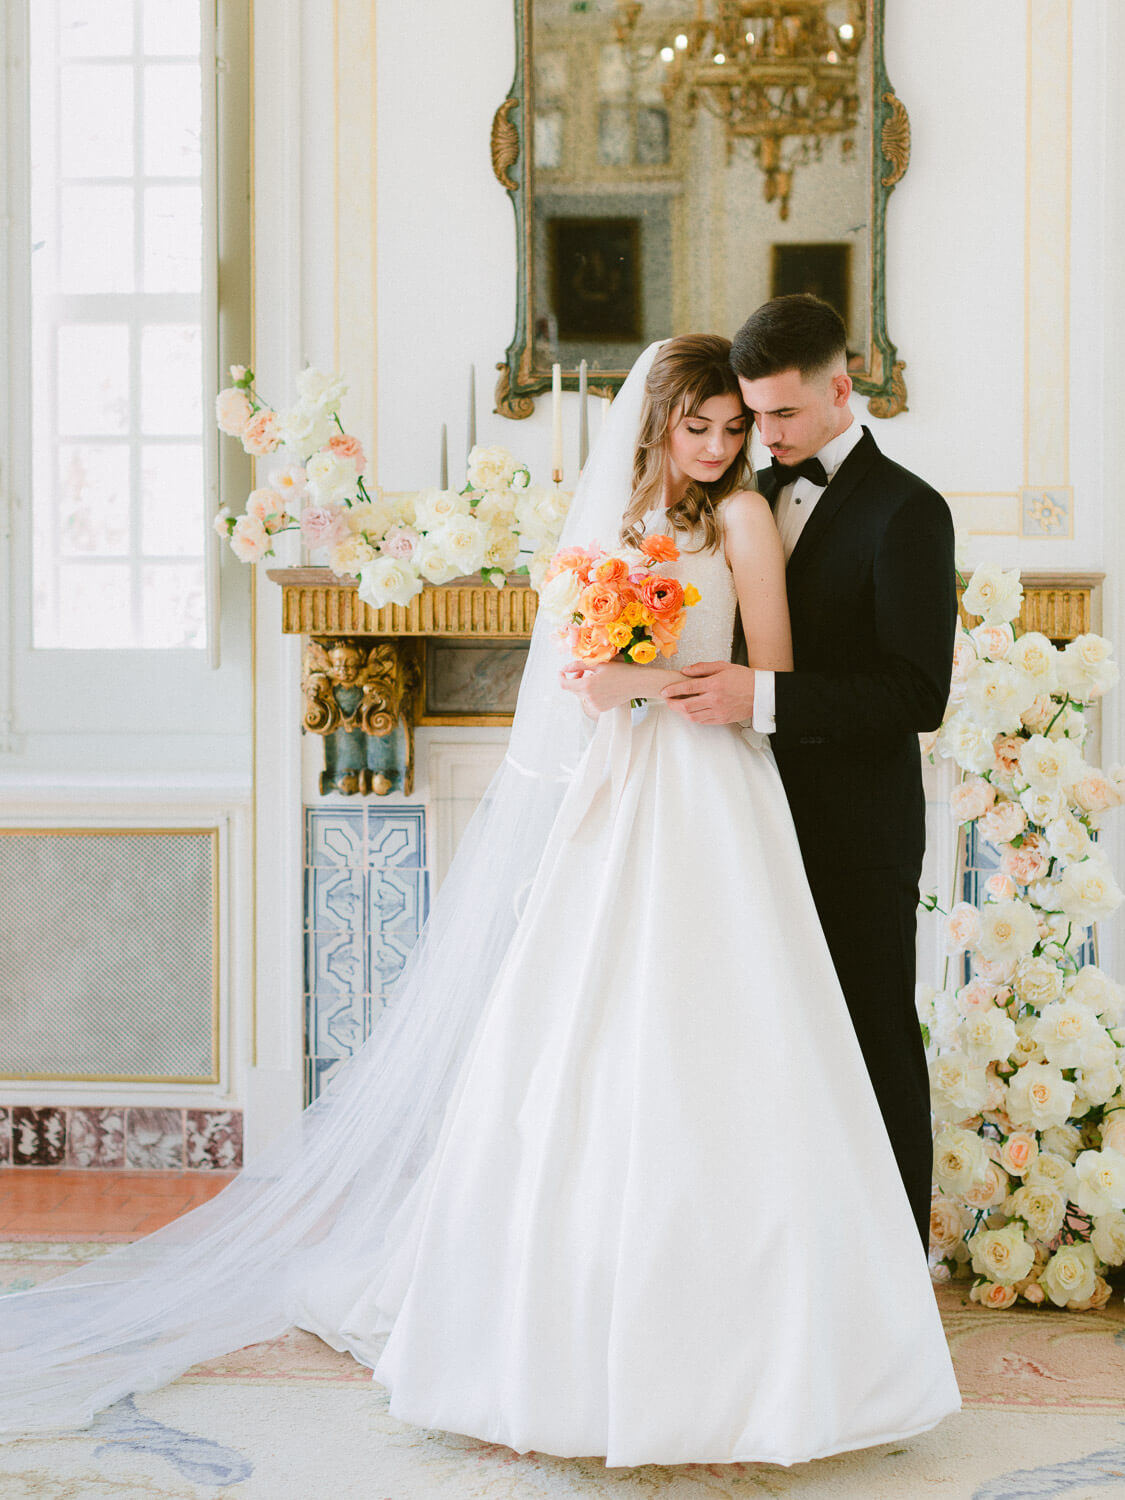 romantic bride and groom on wedding day posing in front of flower-decorated mantlepiece by Portugal Wedding Photographer